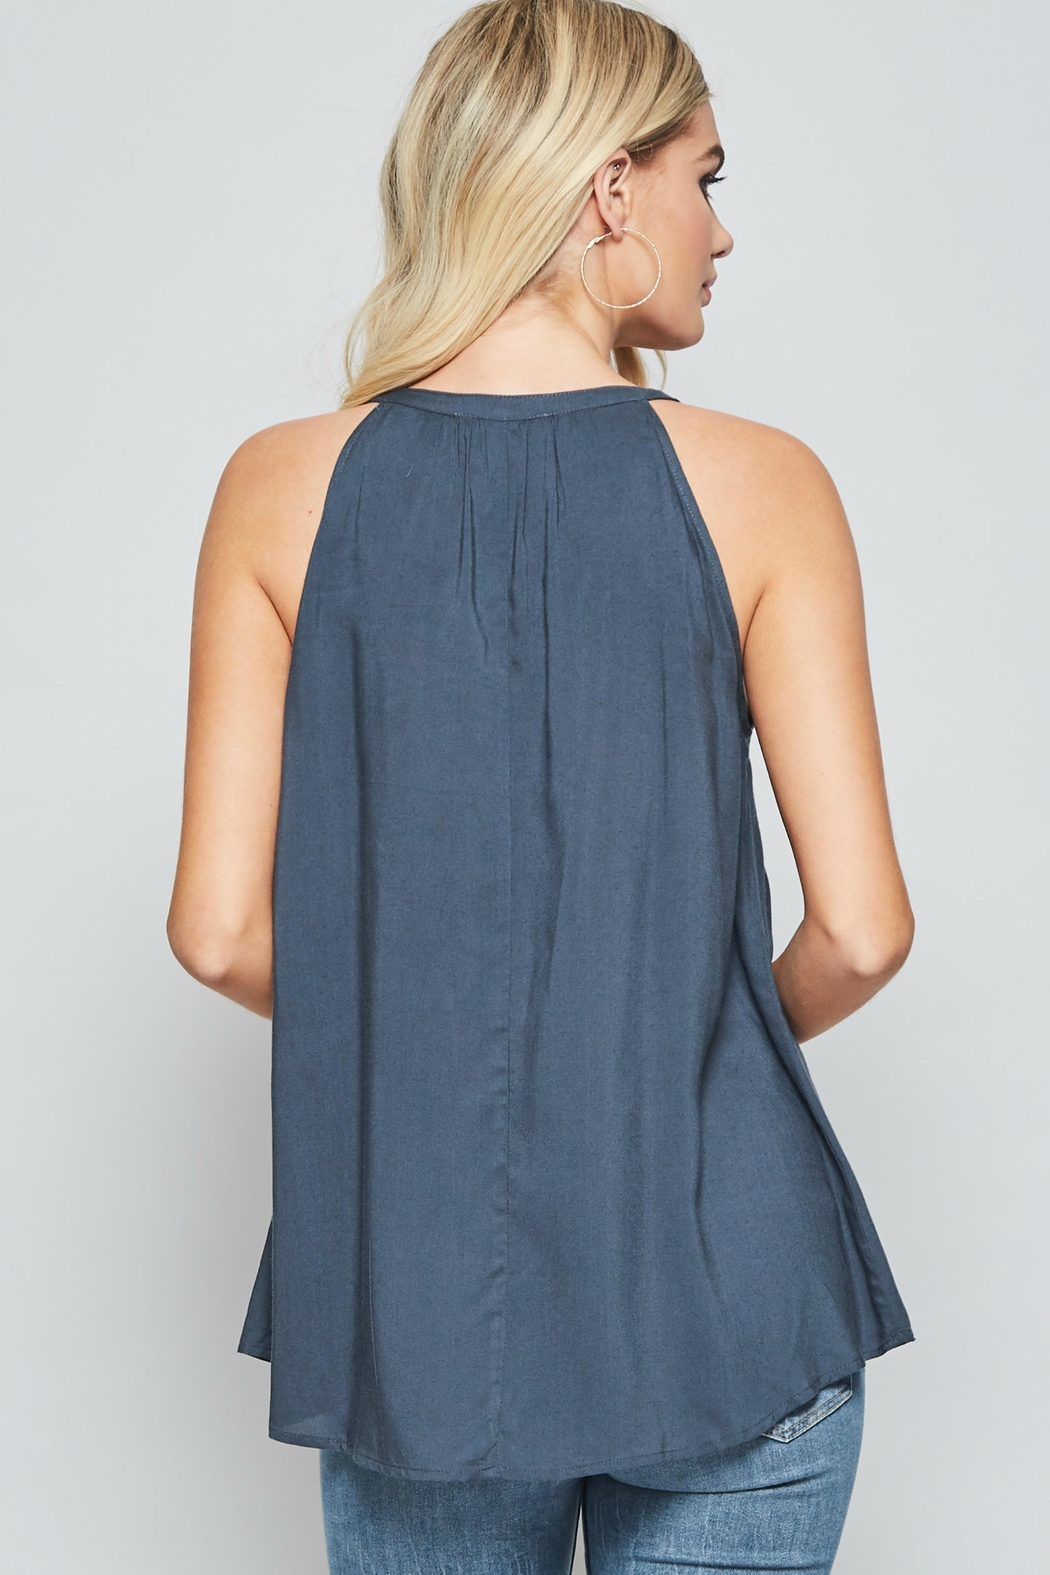 Andree by Unit Sleeveless Embroidered Top - Side Cropped Image